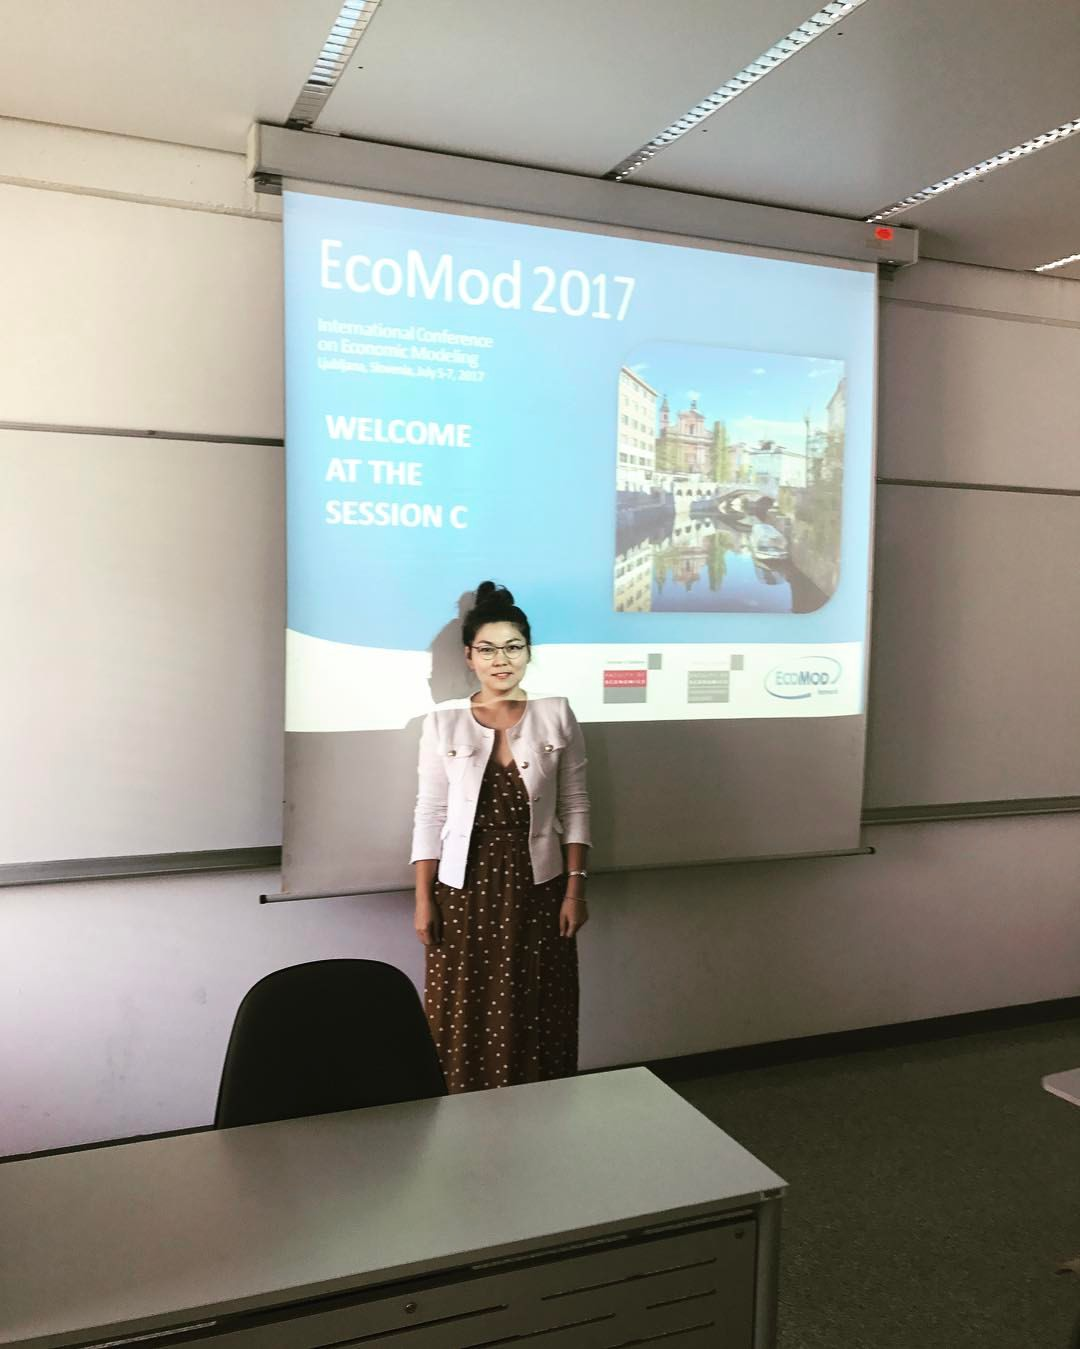 Participation in the International Conference on Economic Modeling (EcoMod2017)